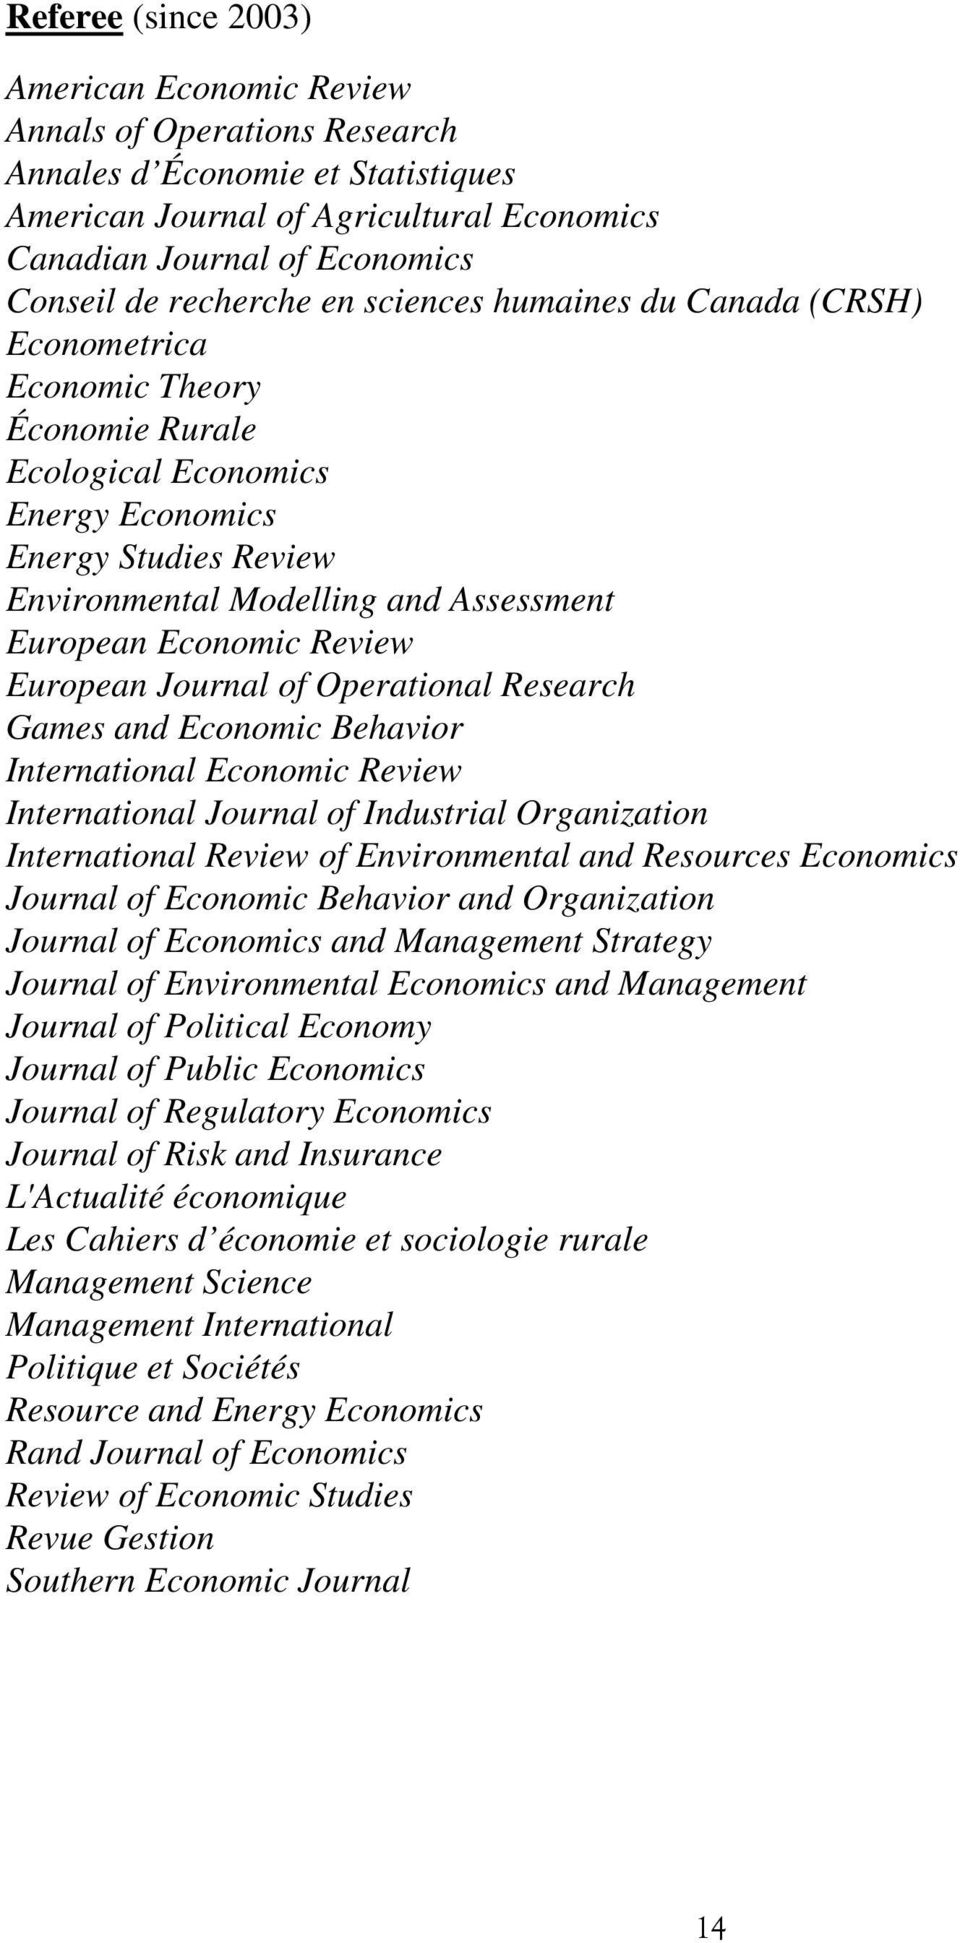 European Economic Review European Journal of Operational Research Games and Economic Behavior International Economic Review International Journal of Industrial Organization International Review of